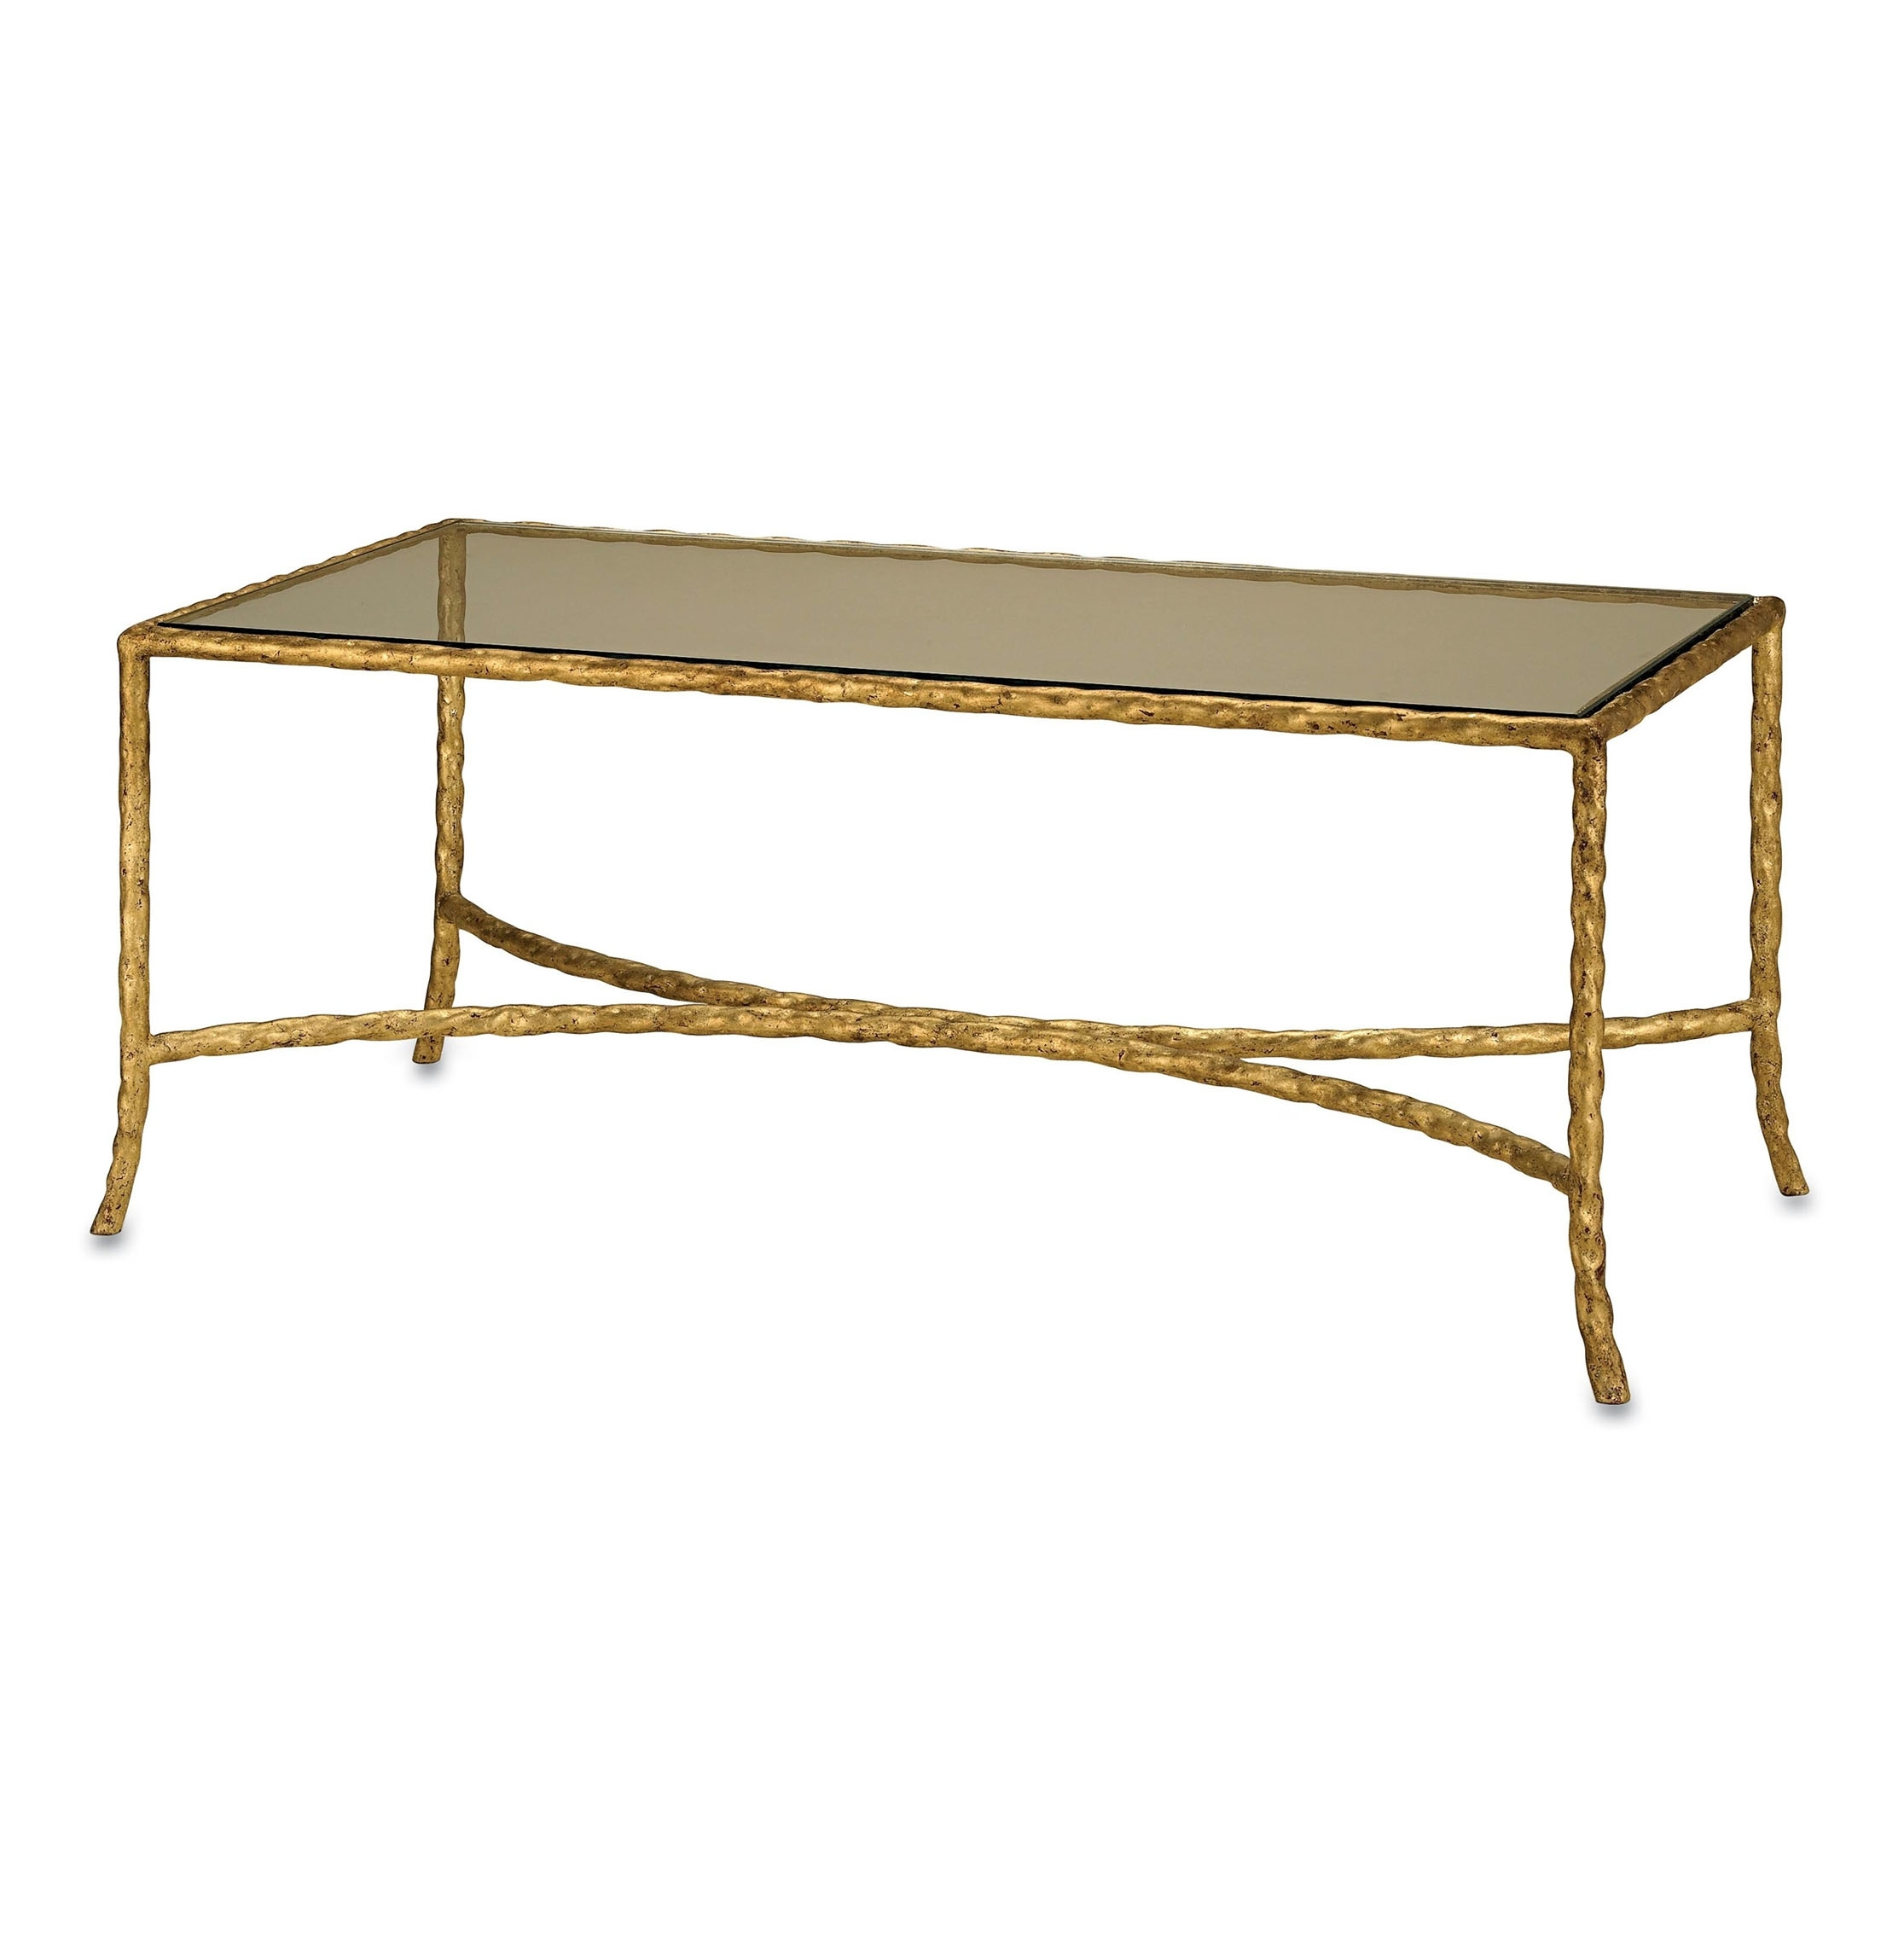 Designer Coffee Tables - Eclectic Coffee Tables | Kathy Kuo Home regarding Rectangular Brass Finish And Glass Coffee Tables (Image 9 of 30)